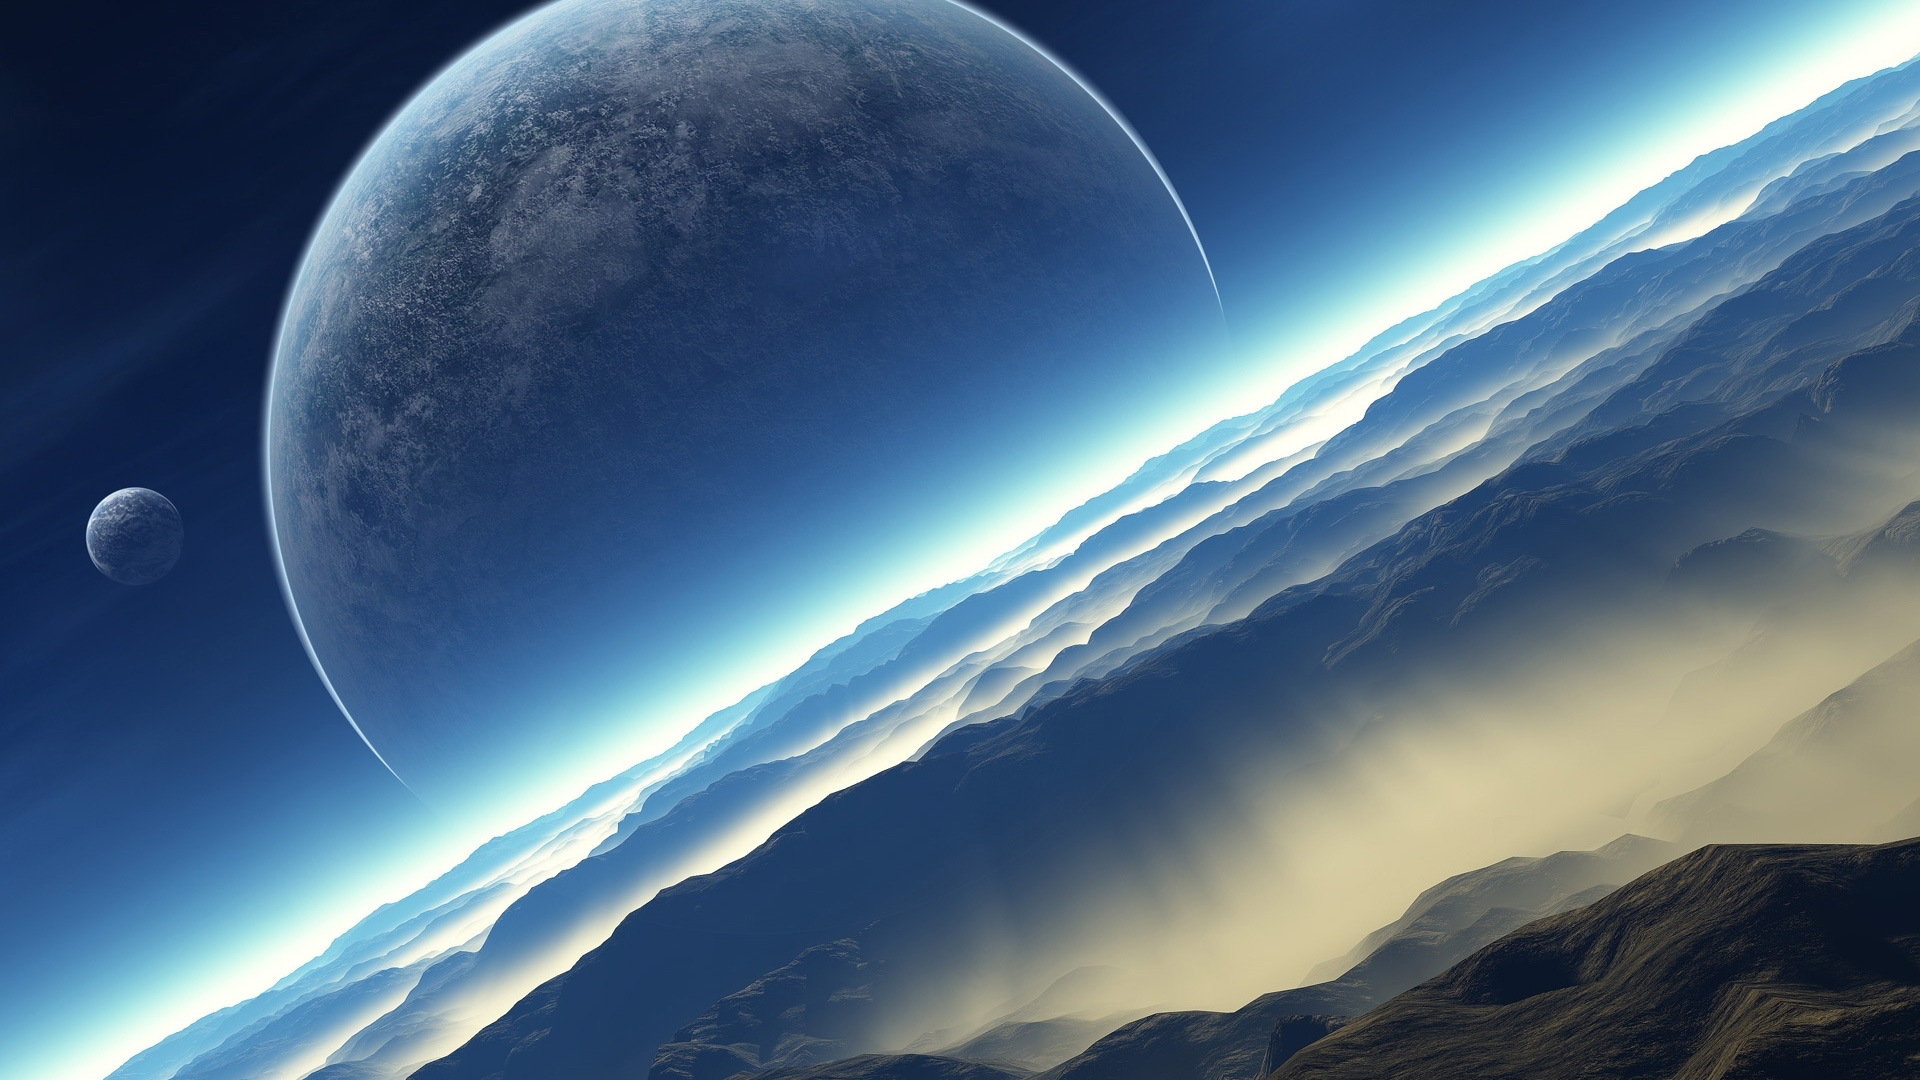 Download High Definition Space Wallpaper FULL HD 1080p Full HD 1920x1080